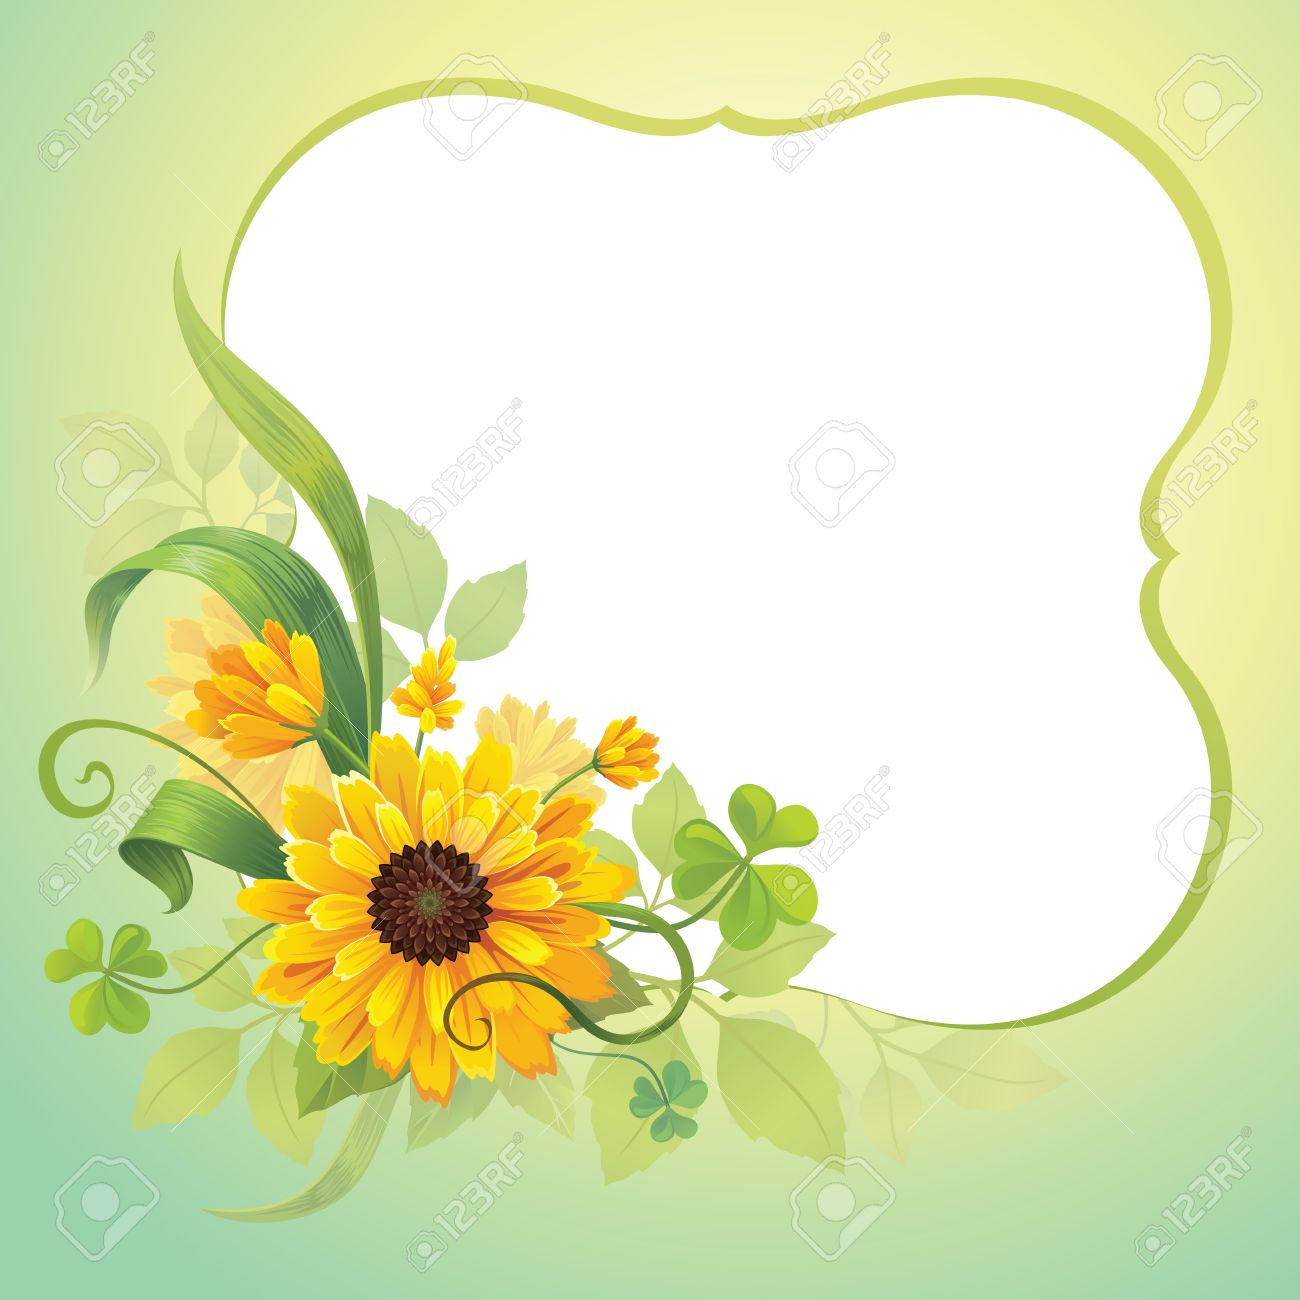 Flower Frame Template Royalty Free Cliparts, Vectors, And Stock ...